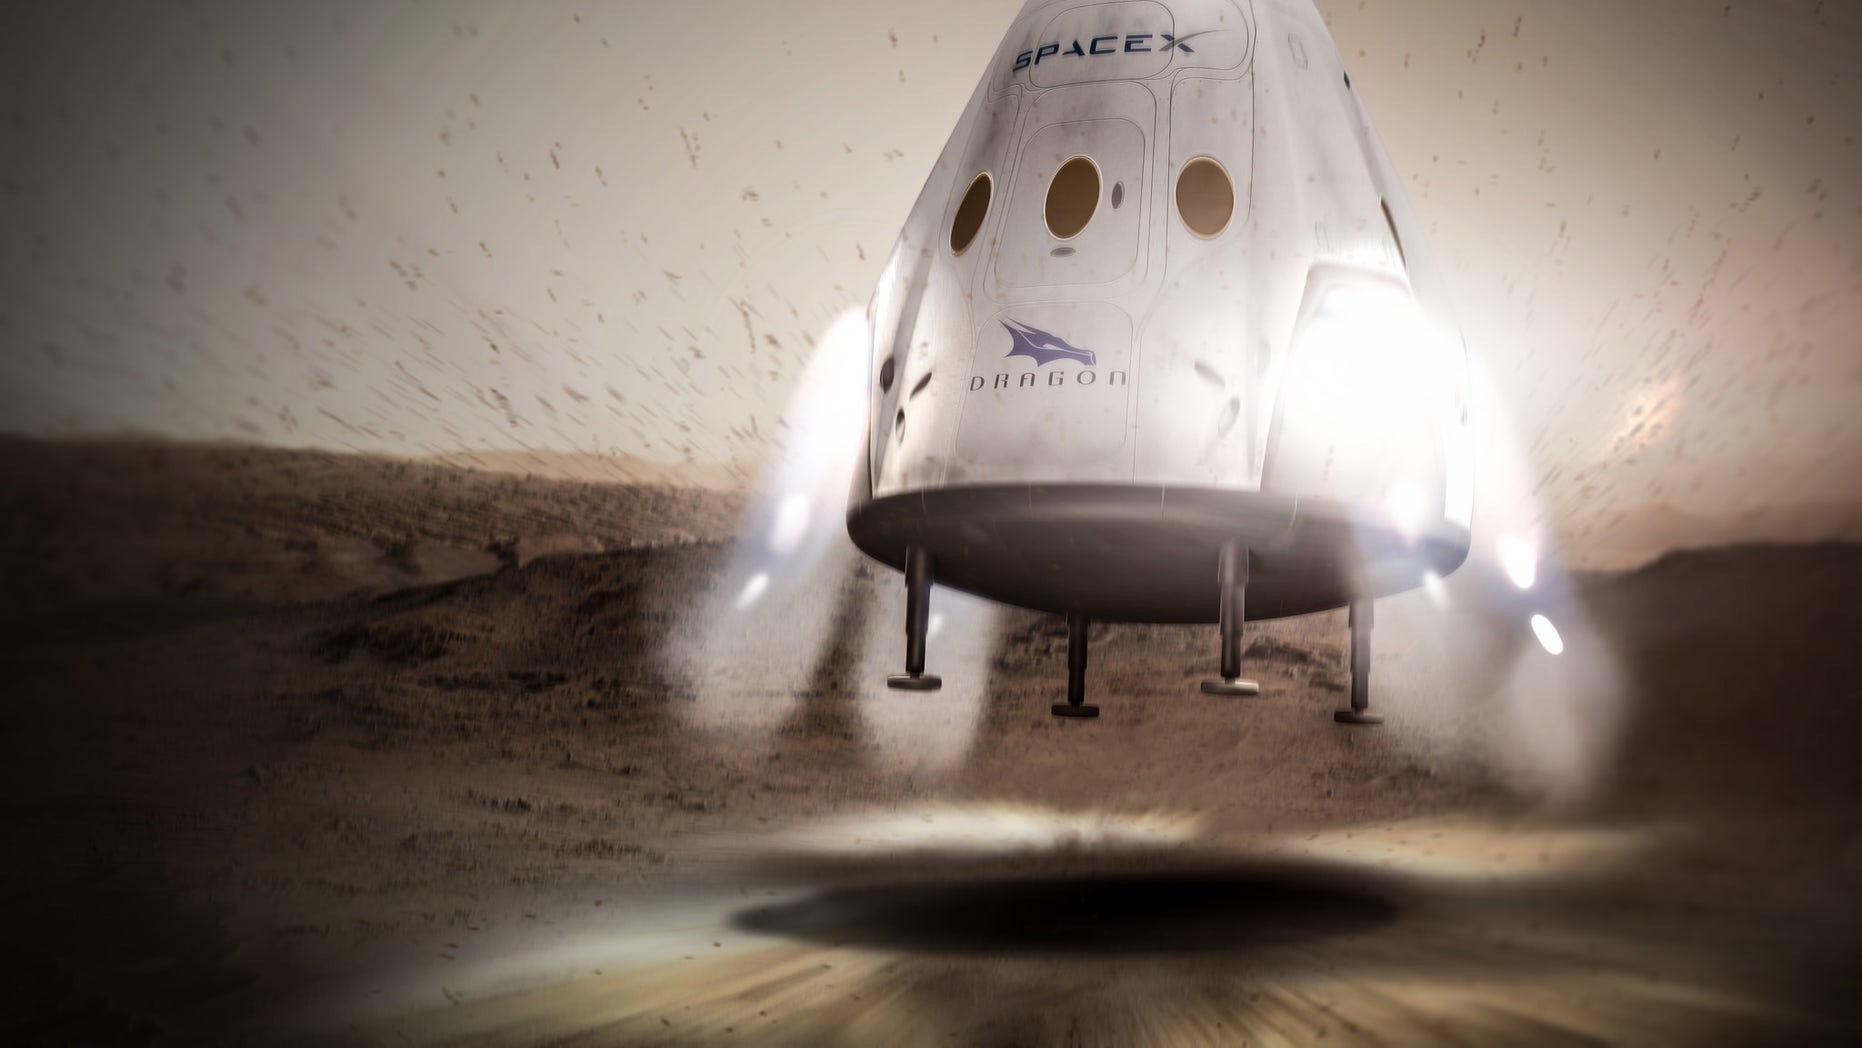 The private spaceflight company SpaceX announced Wednesday (April 27) that will begin launching Dragon space capsules to Mars as early as 2018.